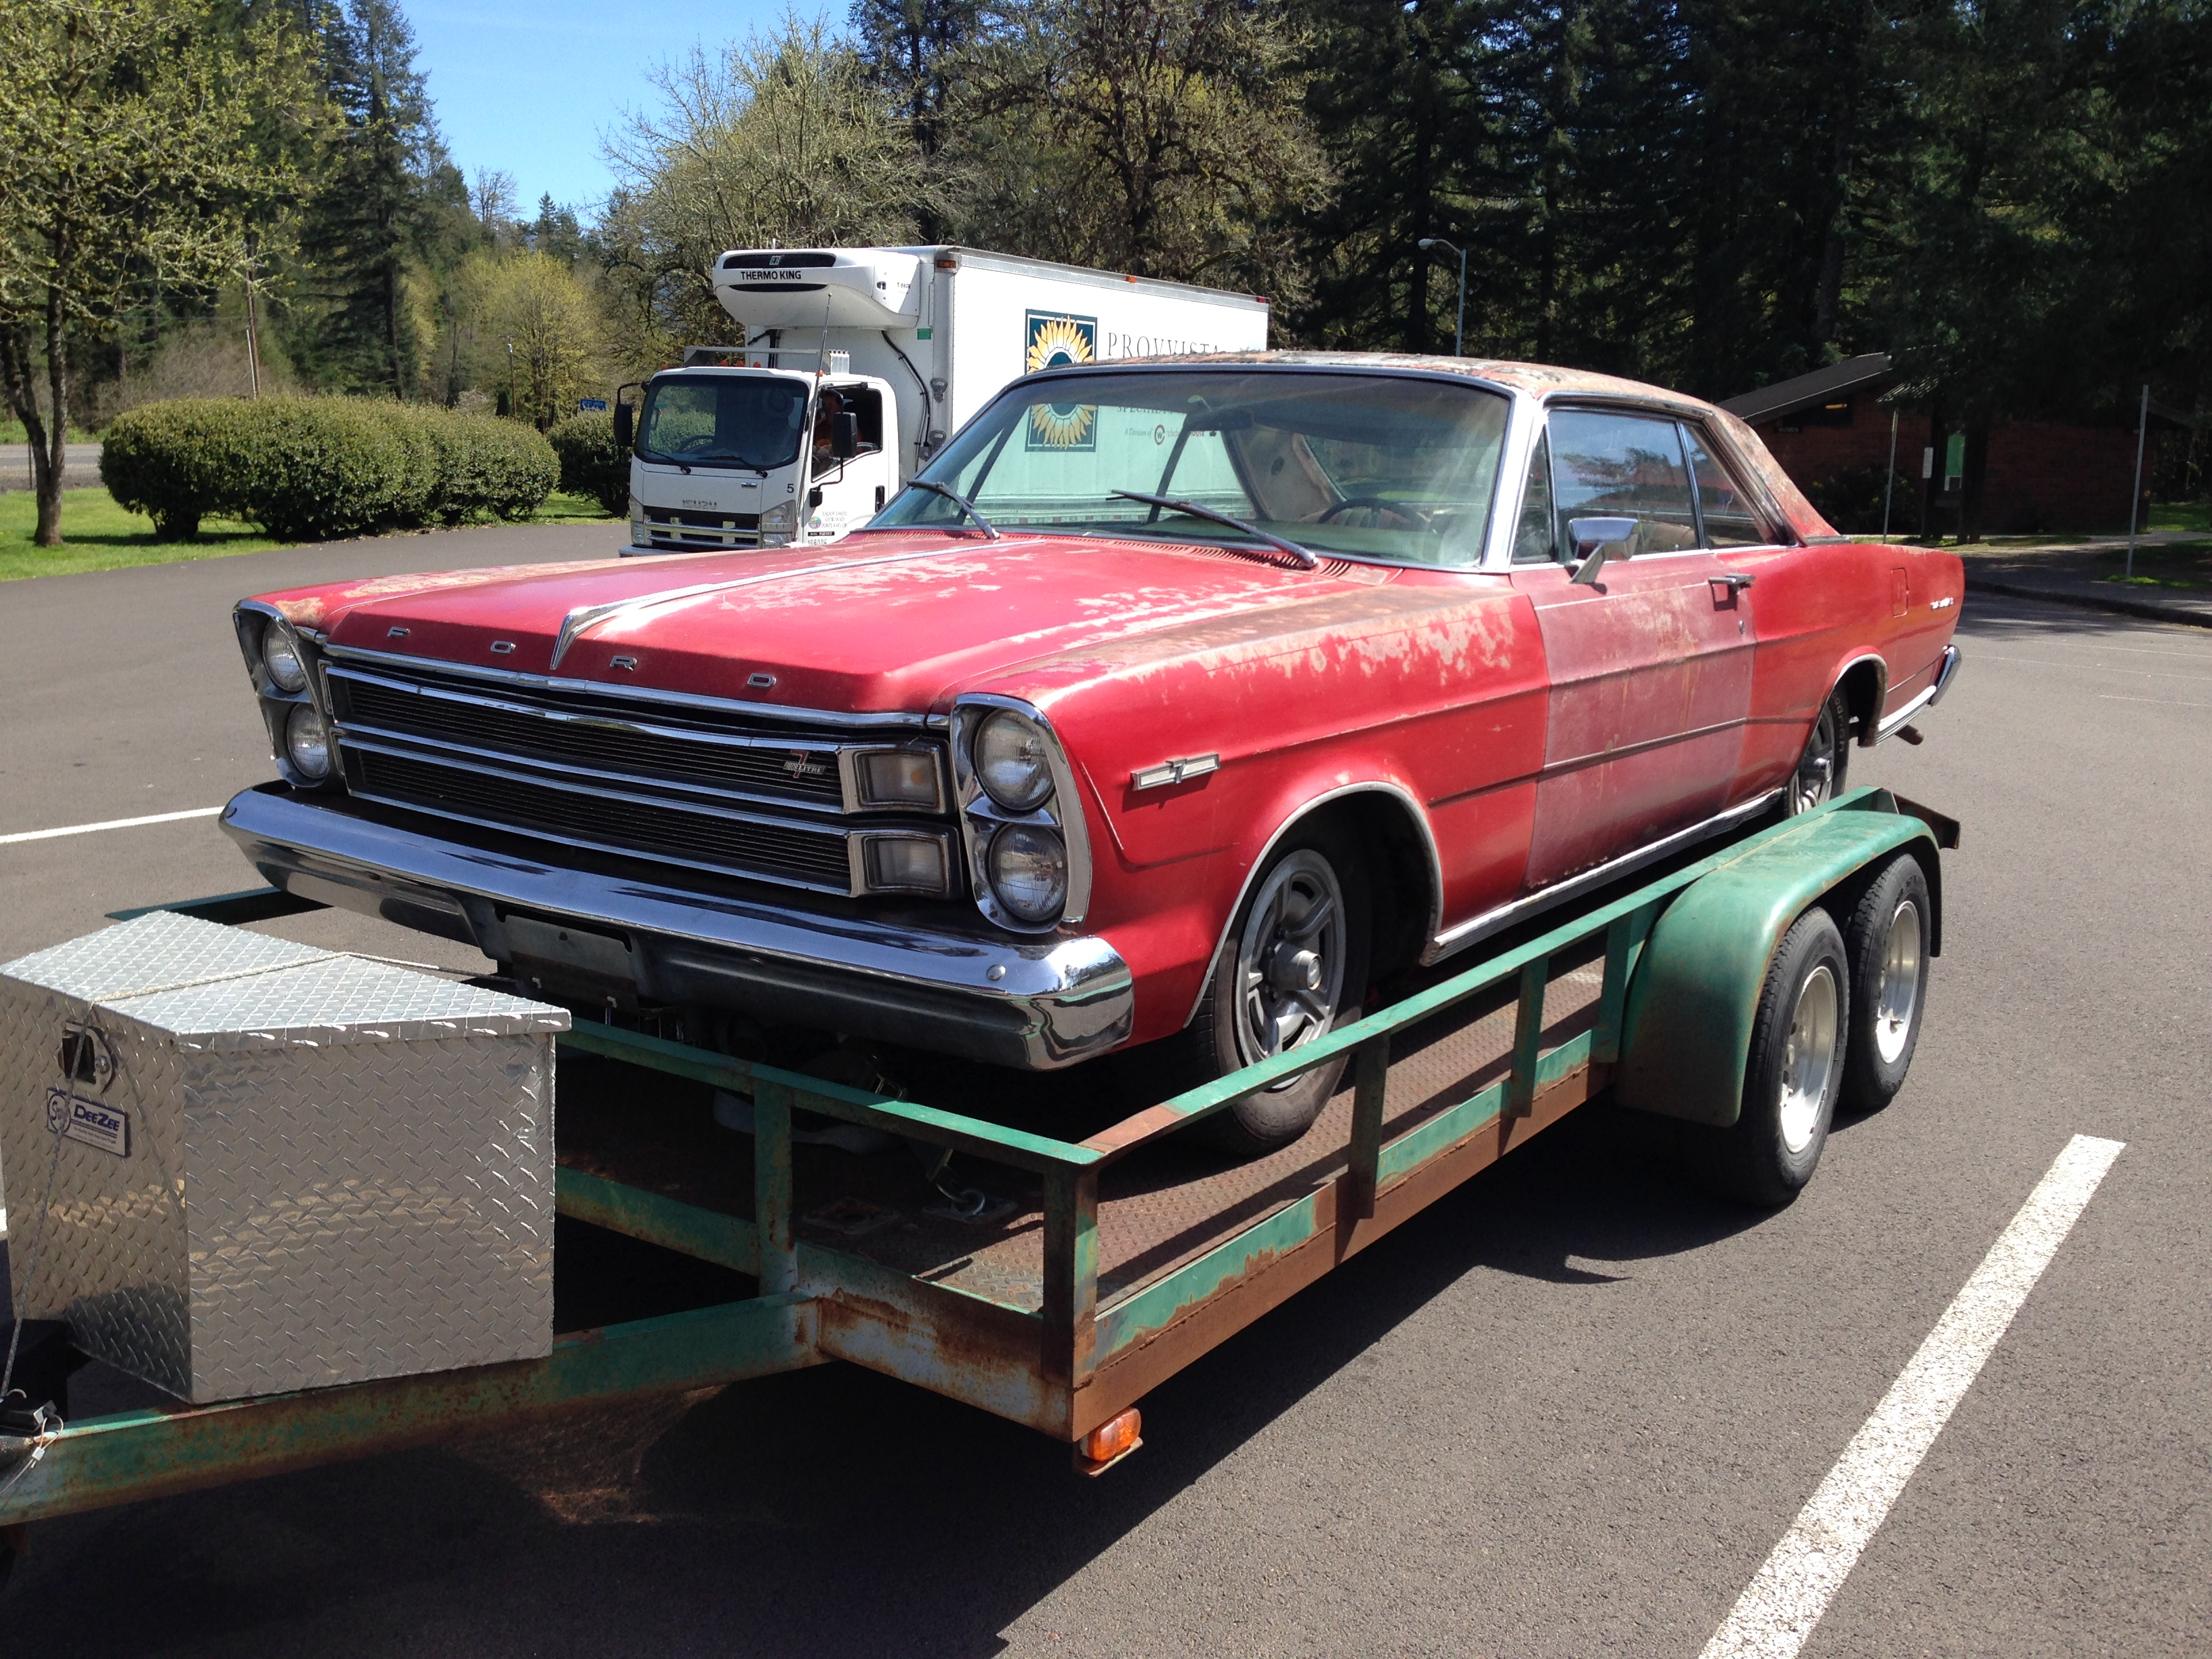 Fullsizeford 1955 1978 Ford Mercury And Edsel Full Size Car Parts 1964 Ltd Convertible 1966 Galaxie 7 Litre 500